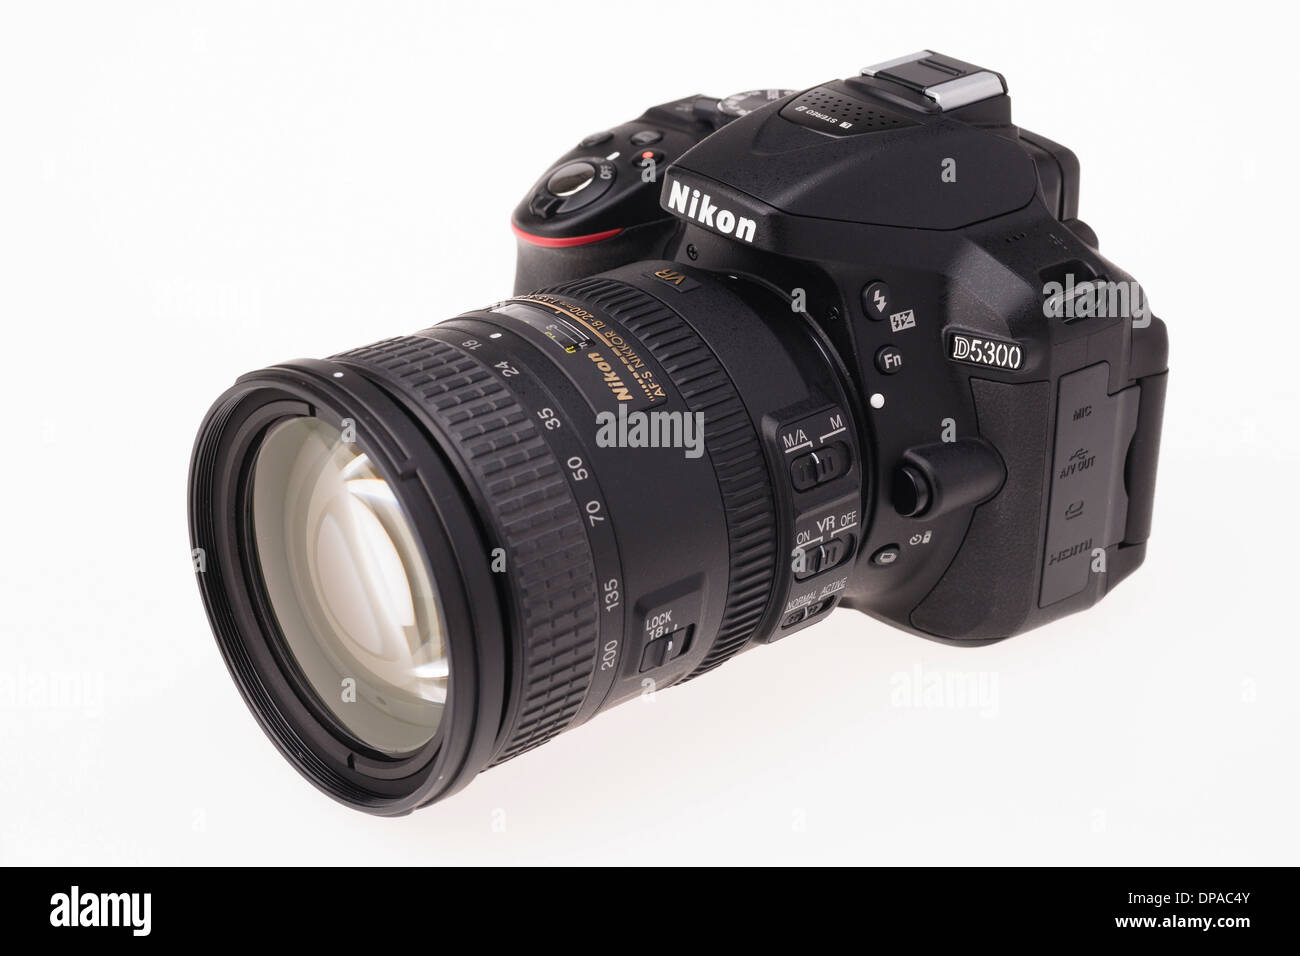 Digital photography equipment - Nikon D5300 - Stock Image